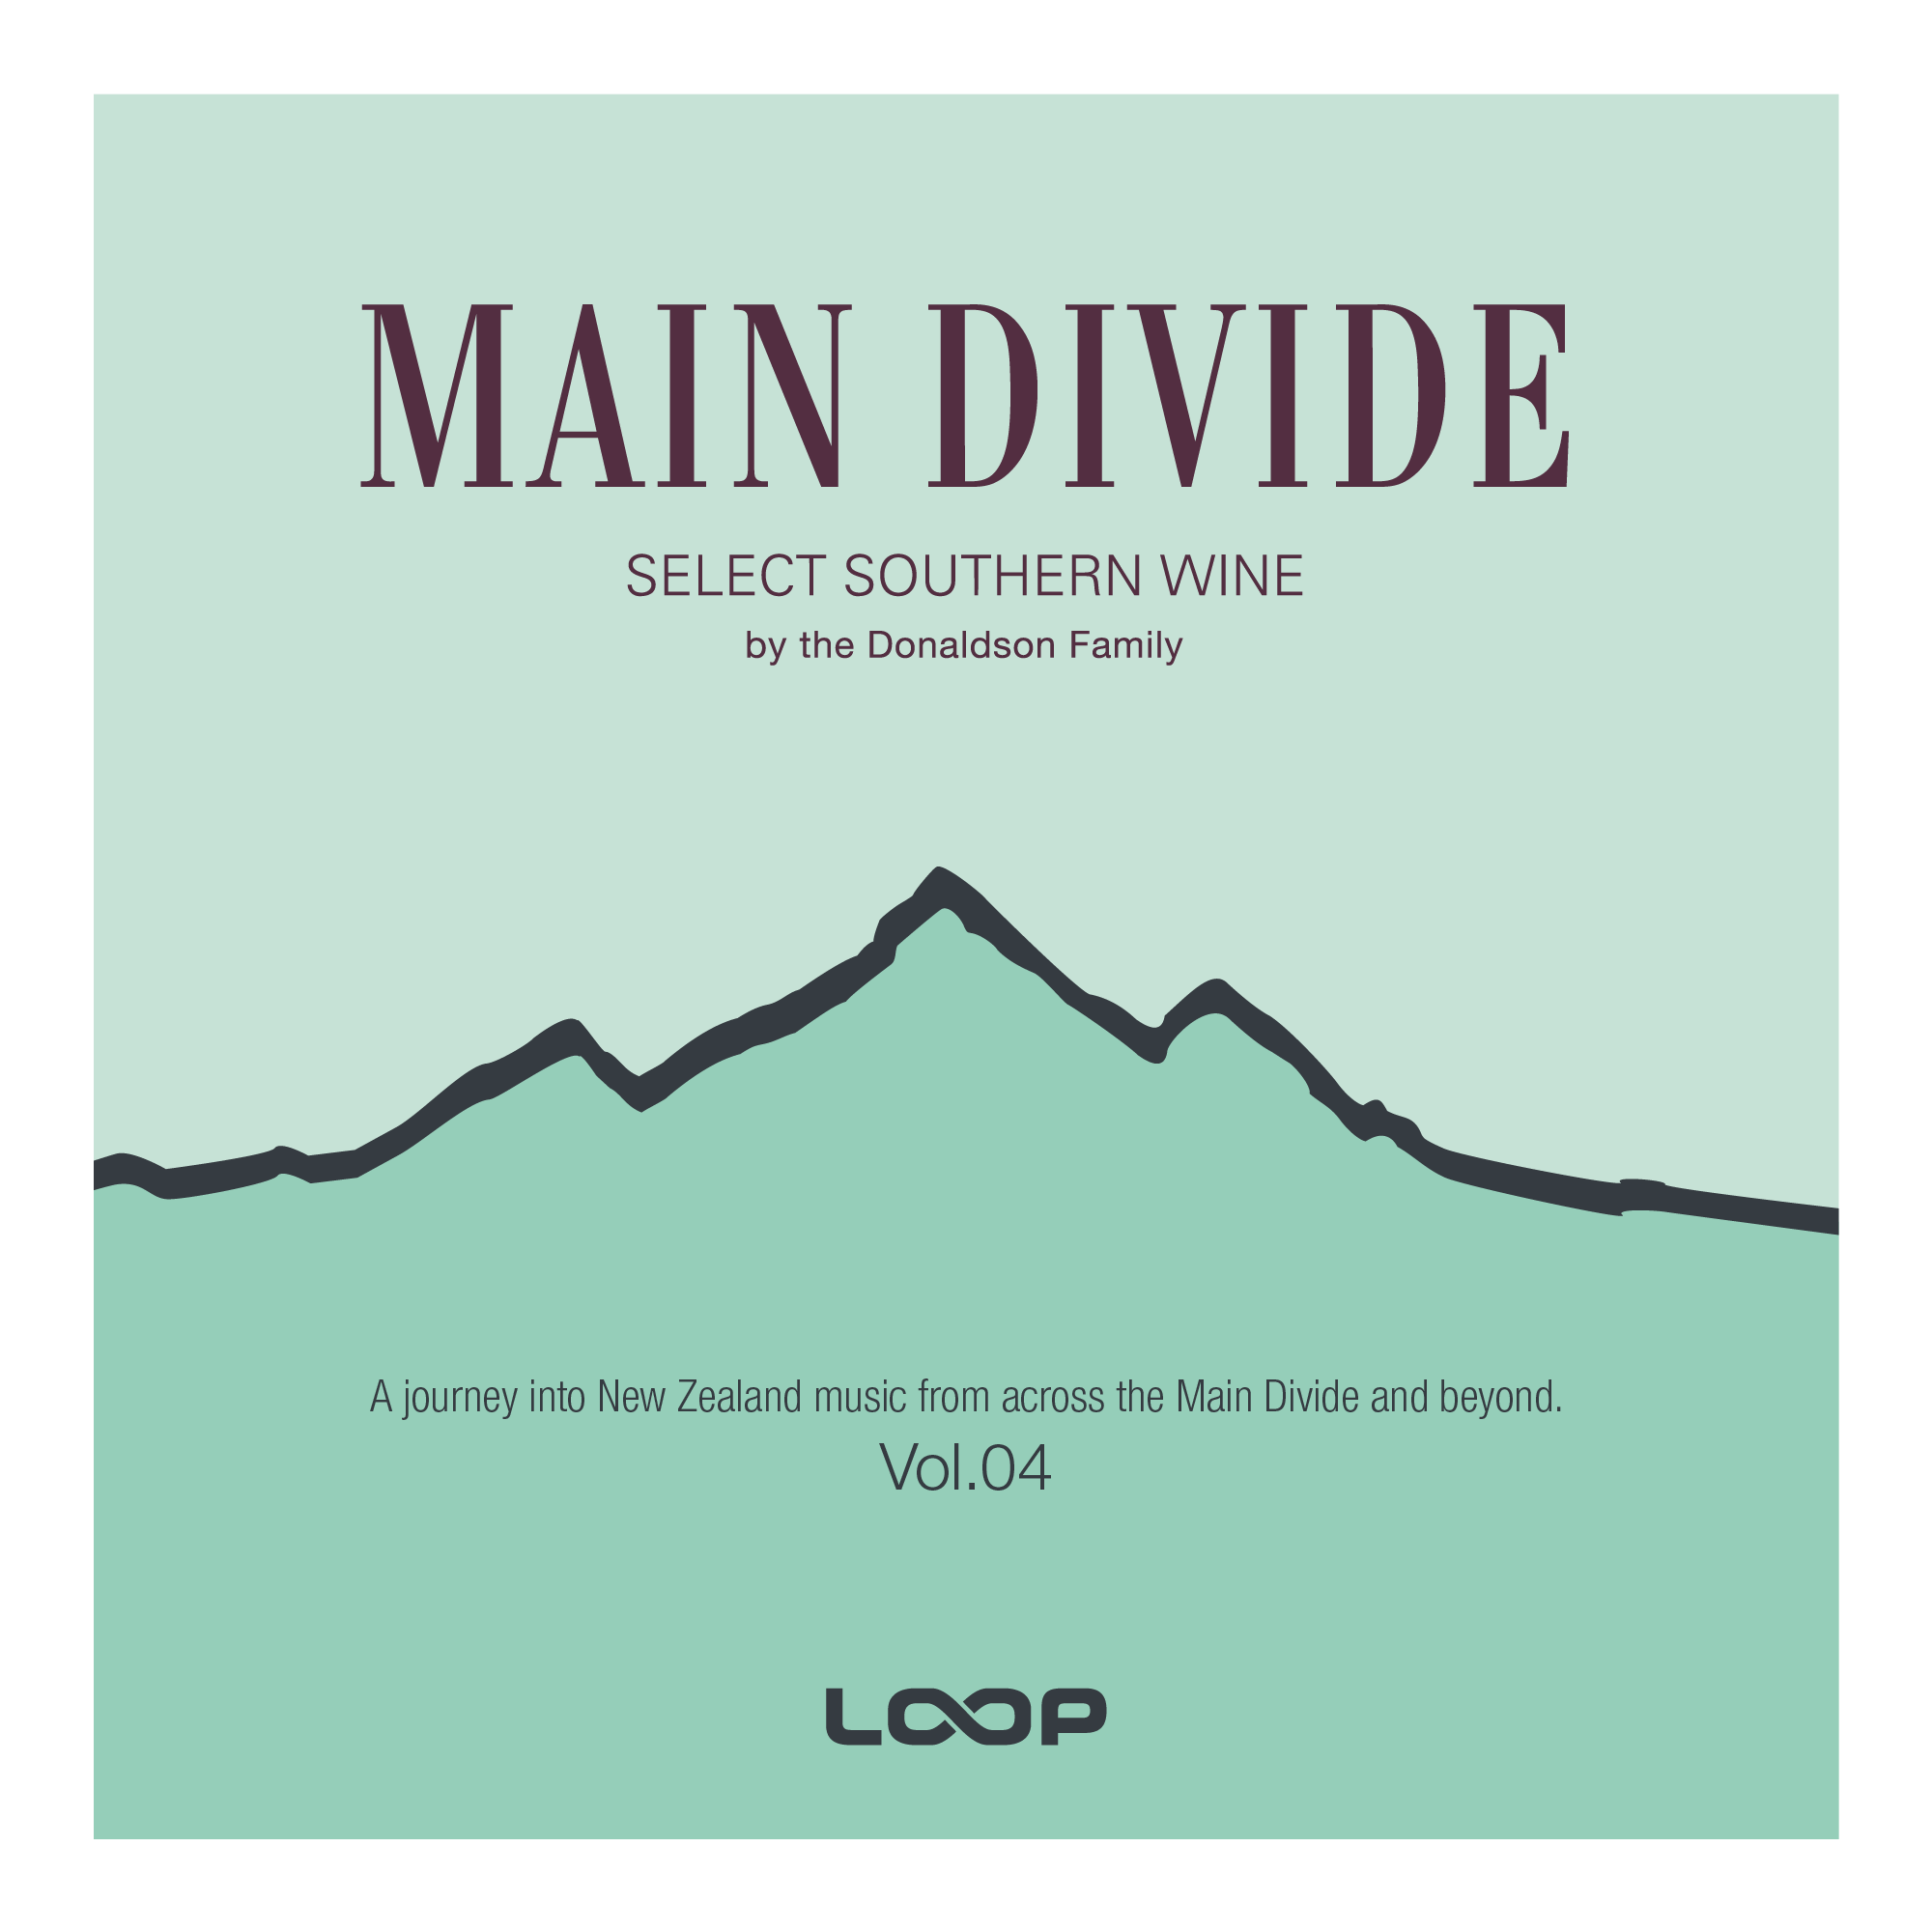 Main Divide NZ Music Compilation Vol.04